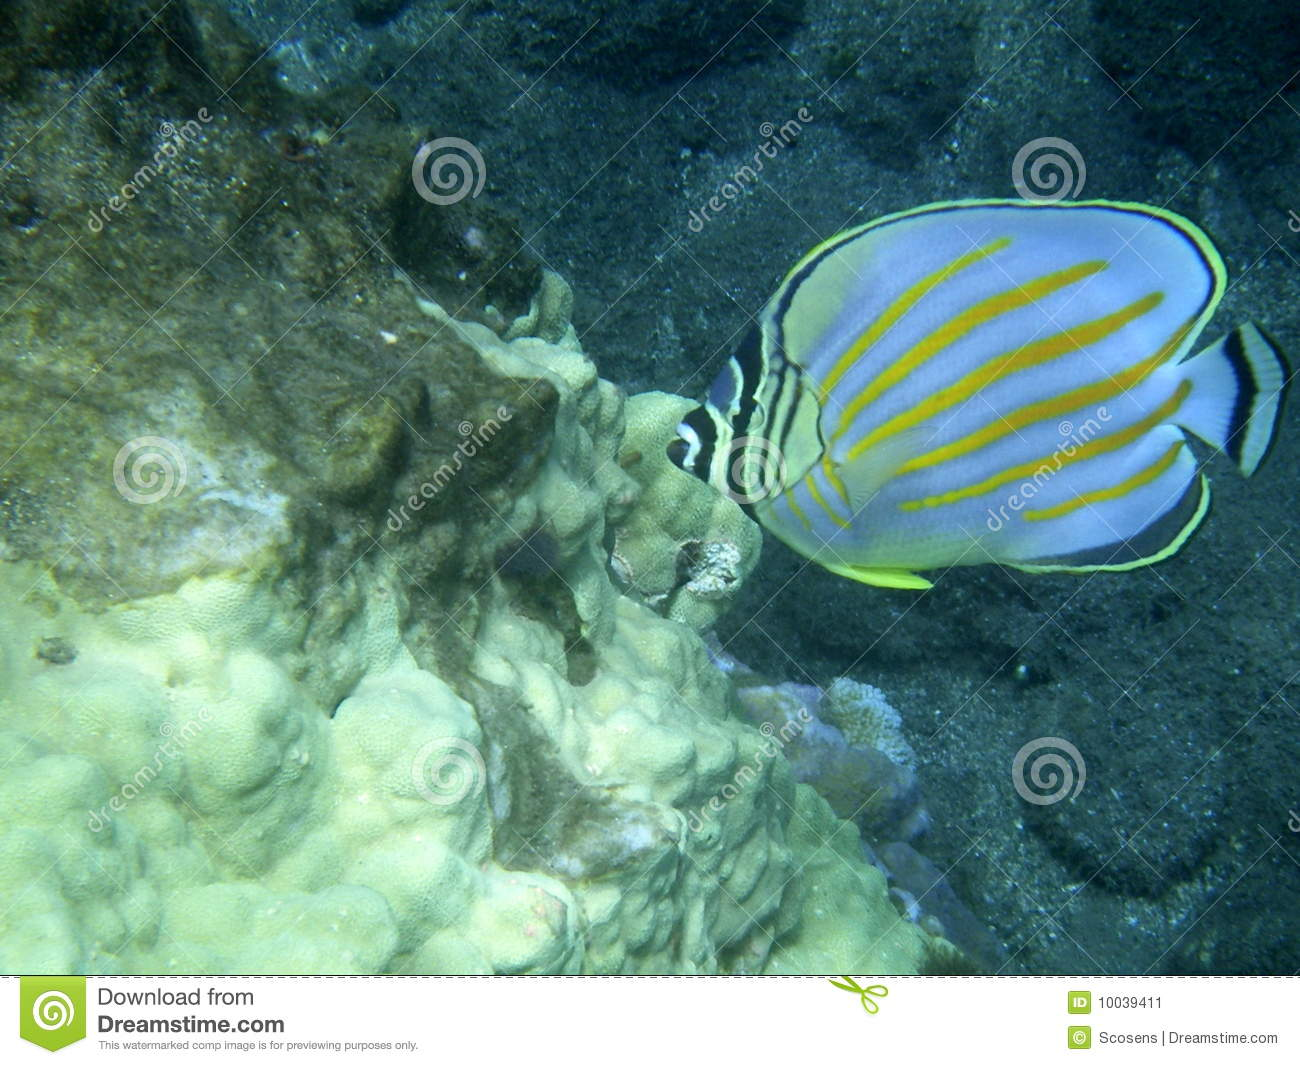 Hawaiian reef fish stock image image 10039411 for Hawaiian reef fish